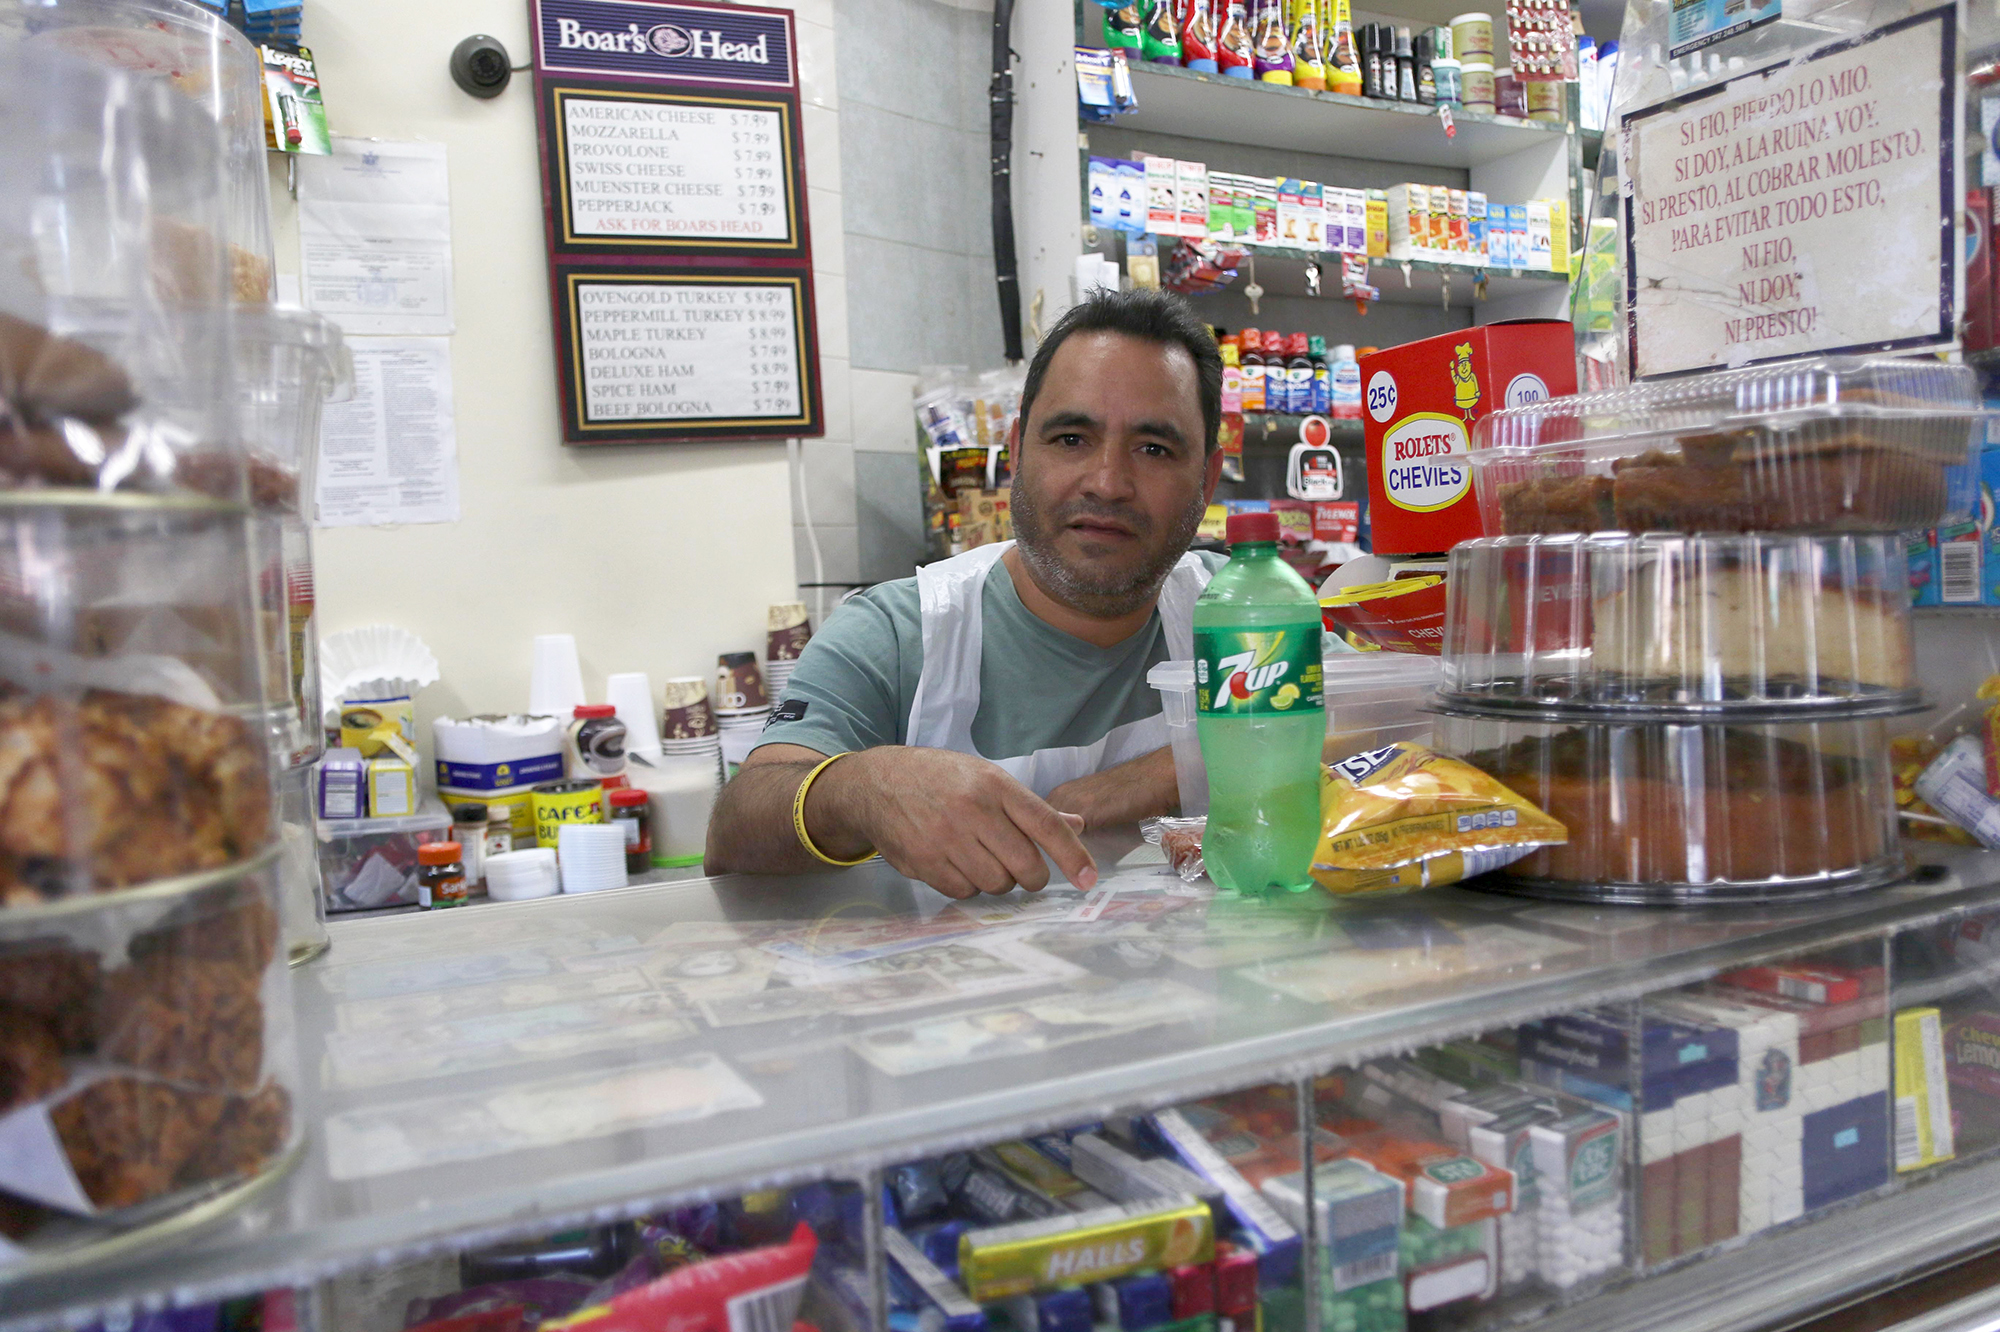 Bolivar Mena manages the Mini Market in Queens frequented by writer Angely Mercado. He always greets his customers and does his best to manage morning and afternoon rushes.